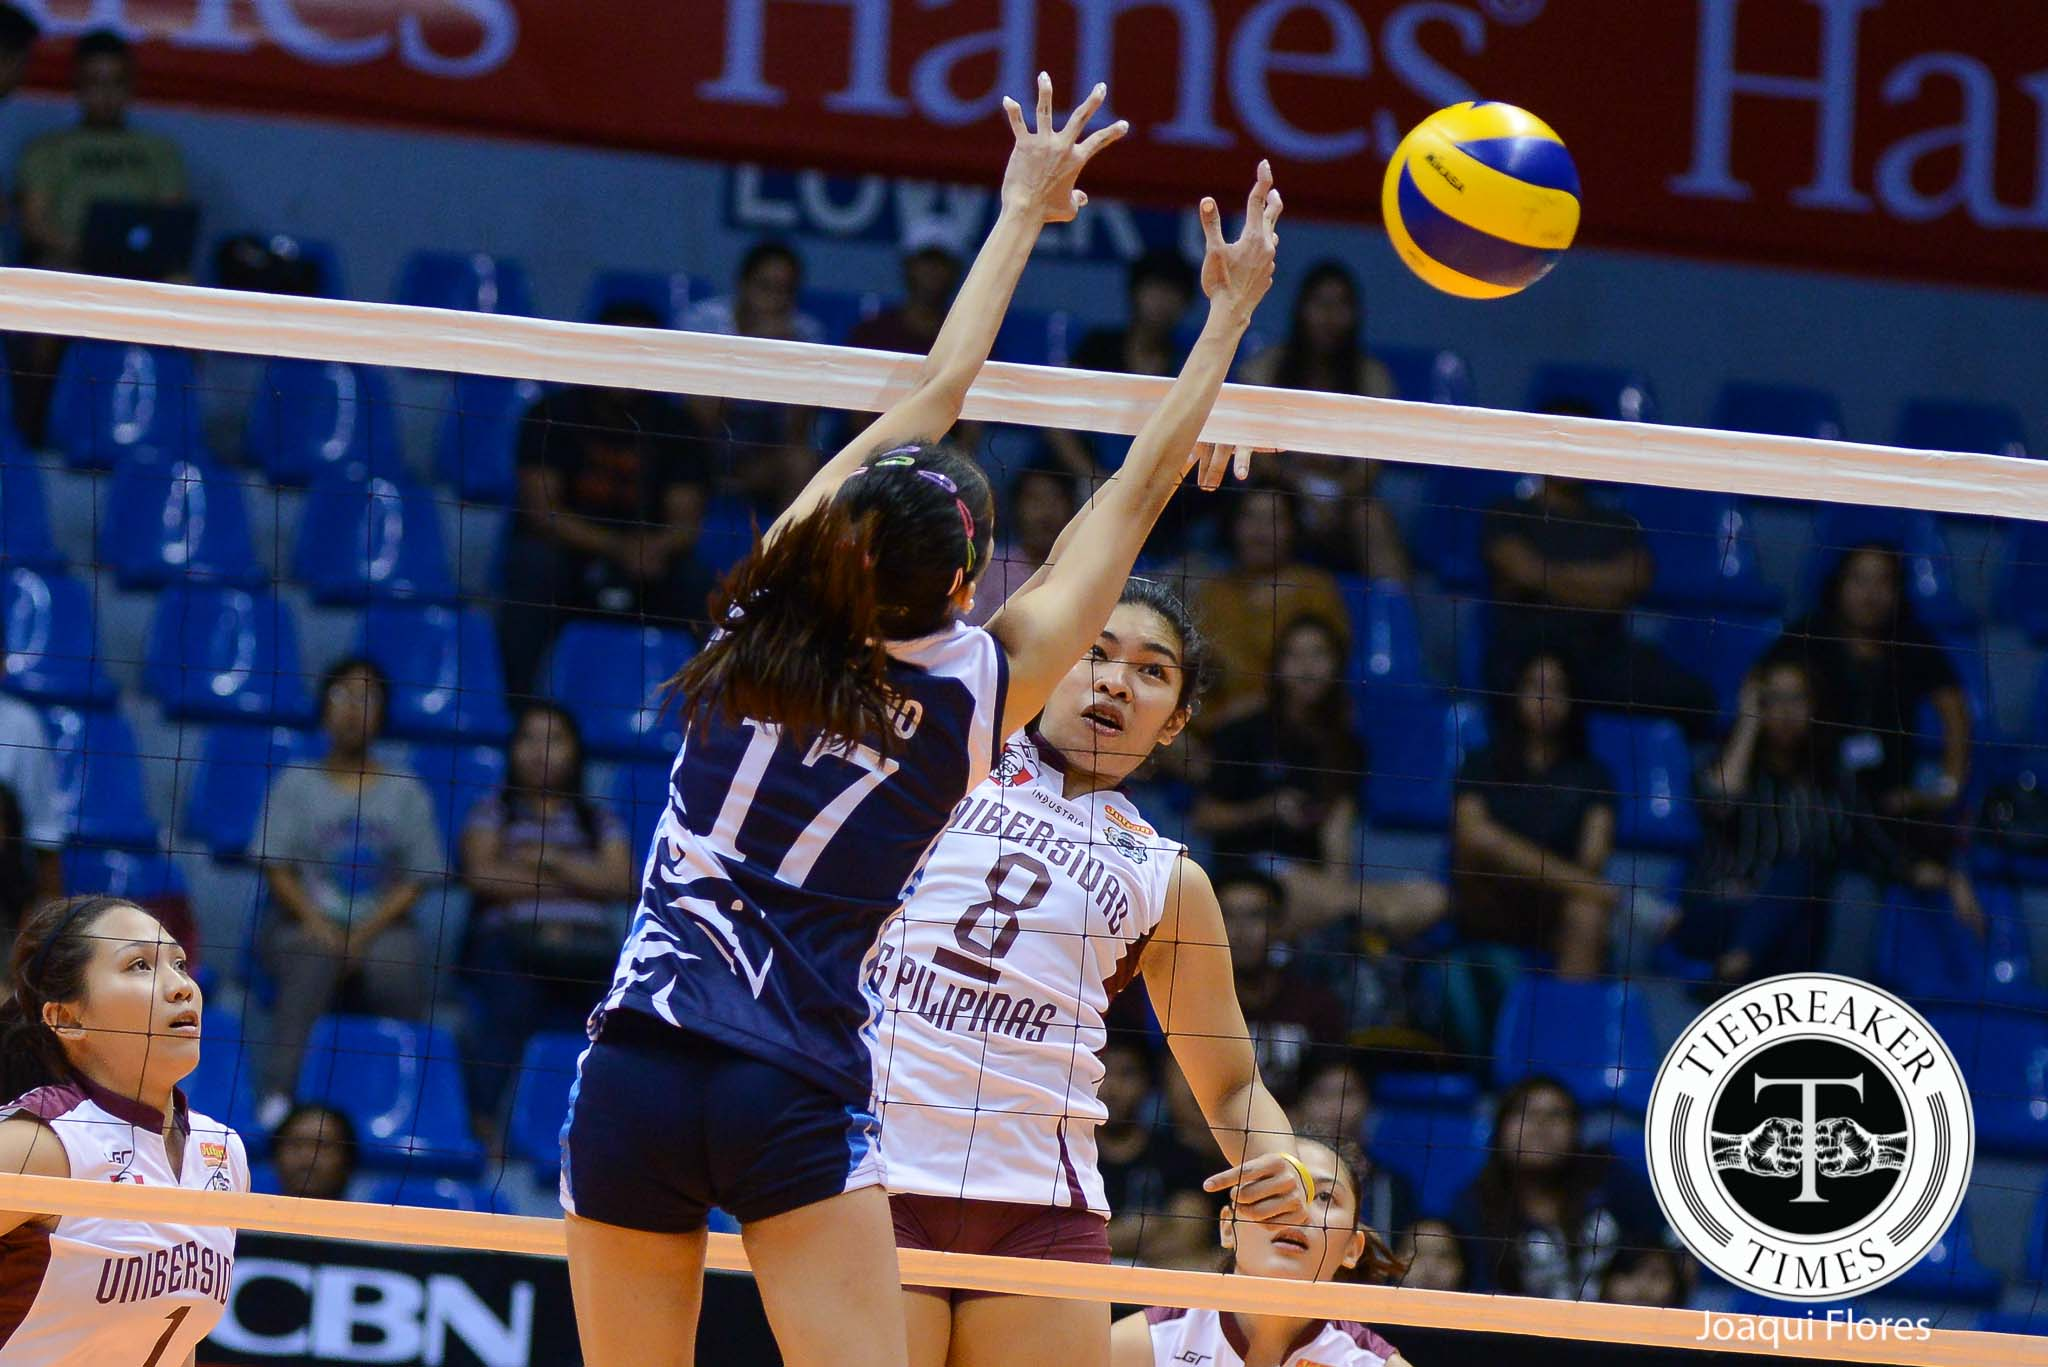 Philippine Sports News - Tiebreaker Times Lady Maroons snap skid at free-falling Lady Falcons' expense AdU News UAAP UP Volleyball  UP Lady Maroons UAAP Season 78 Volleyball UAAP Season 78 Nicole Tiamzon Mylene Paat May Roque Marian Buitre Kathy Bersola Justine Dorog Jerry Yee Jema Galanza Isa Molde Adamson Lady Falcons